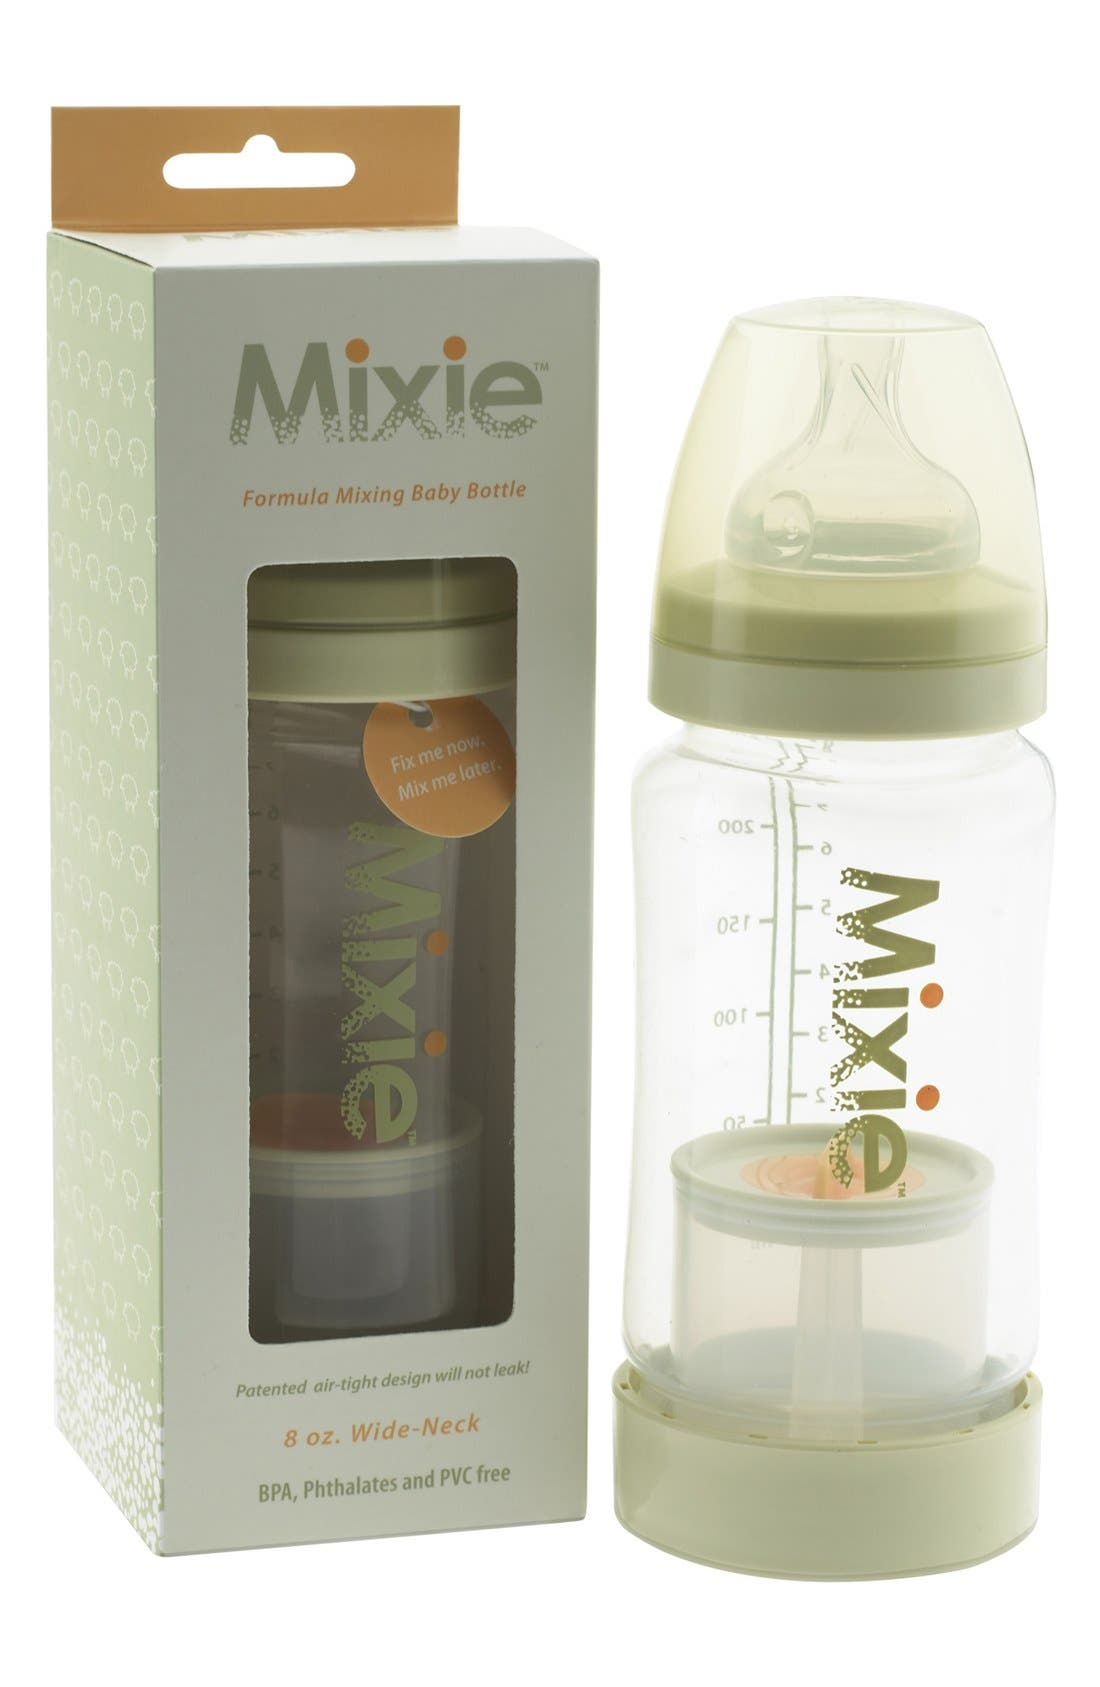 Alternate Image 1 Selected - Mixie Baby Formula Mixing Baby Bottle